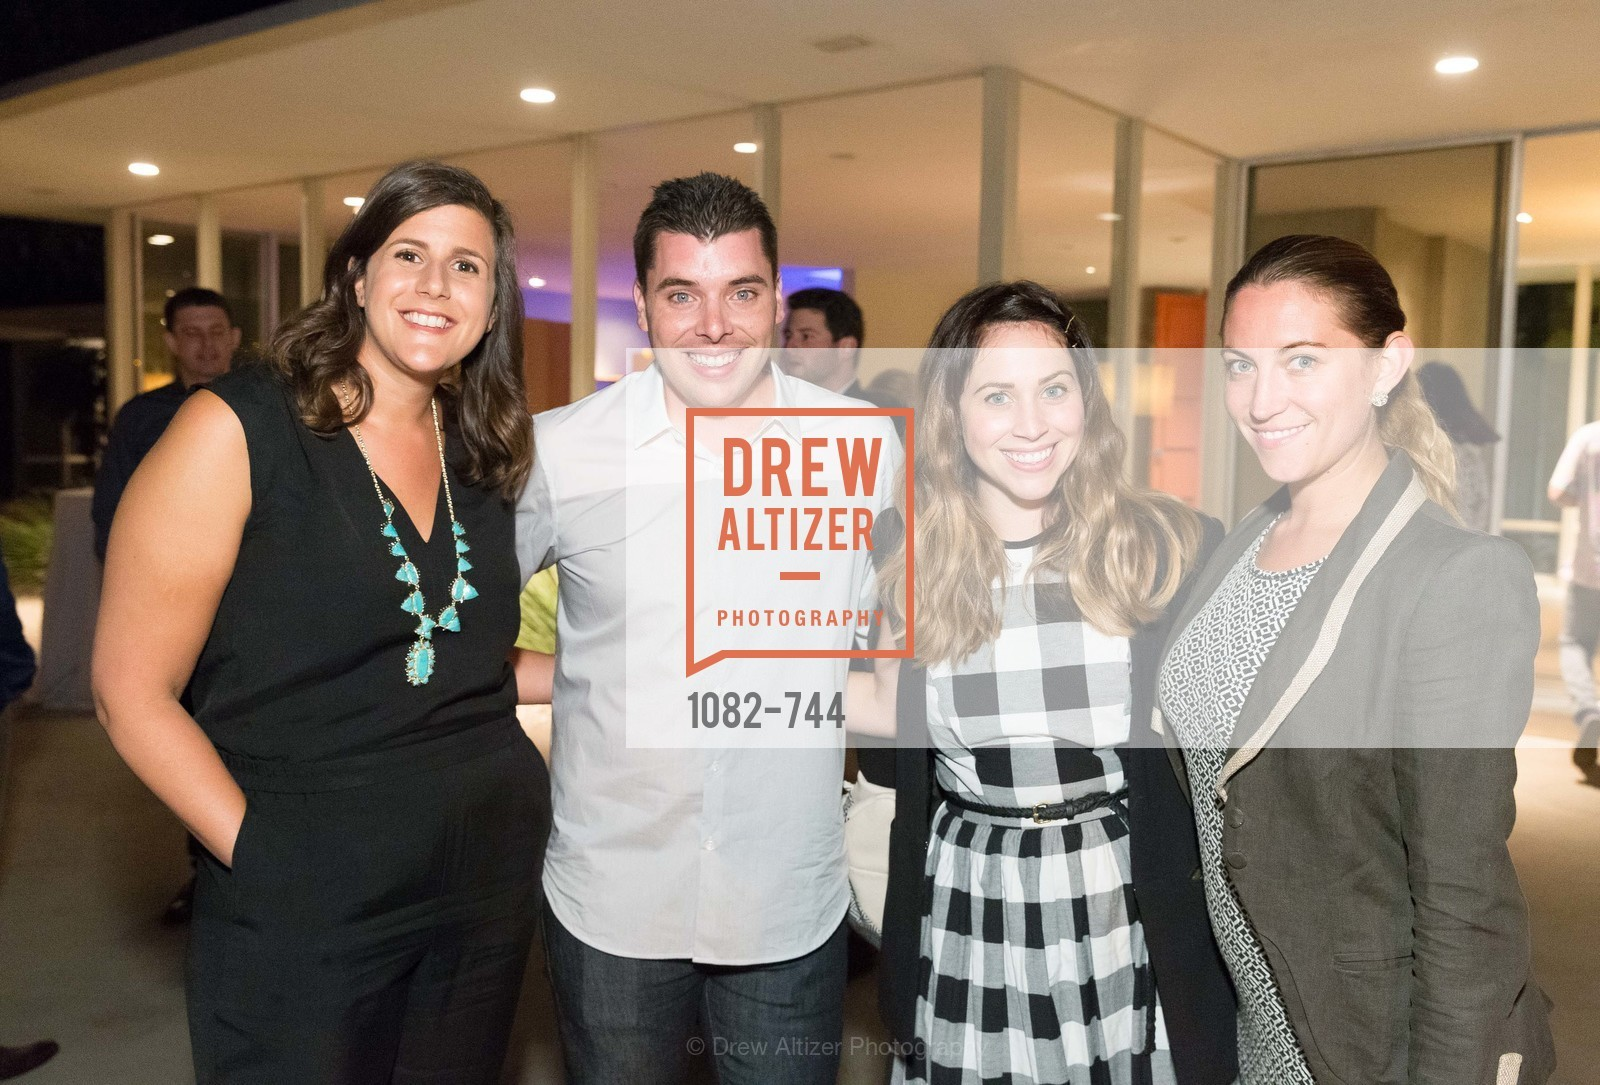 Lauren Sherman, Johnny Brackett, Jaclyn Johnson, Beth Wyrick, Celebration of Launch of SHYP in Los Angeles, US, May 21st, 2015,Drew Altizer, Drew Altizer Photography, full-service agency, private events, San Francisco photographer, photographer california